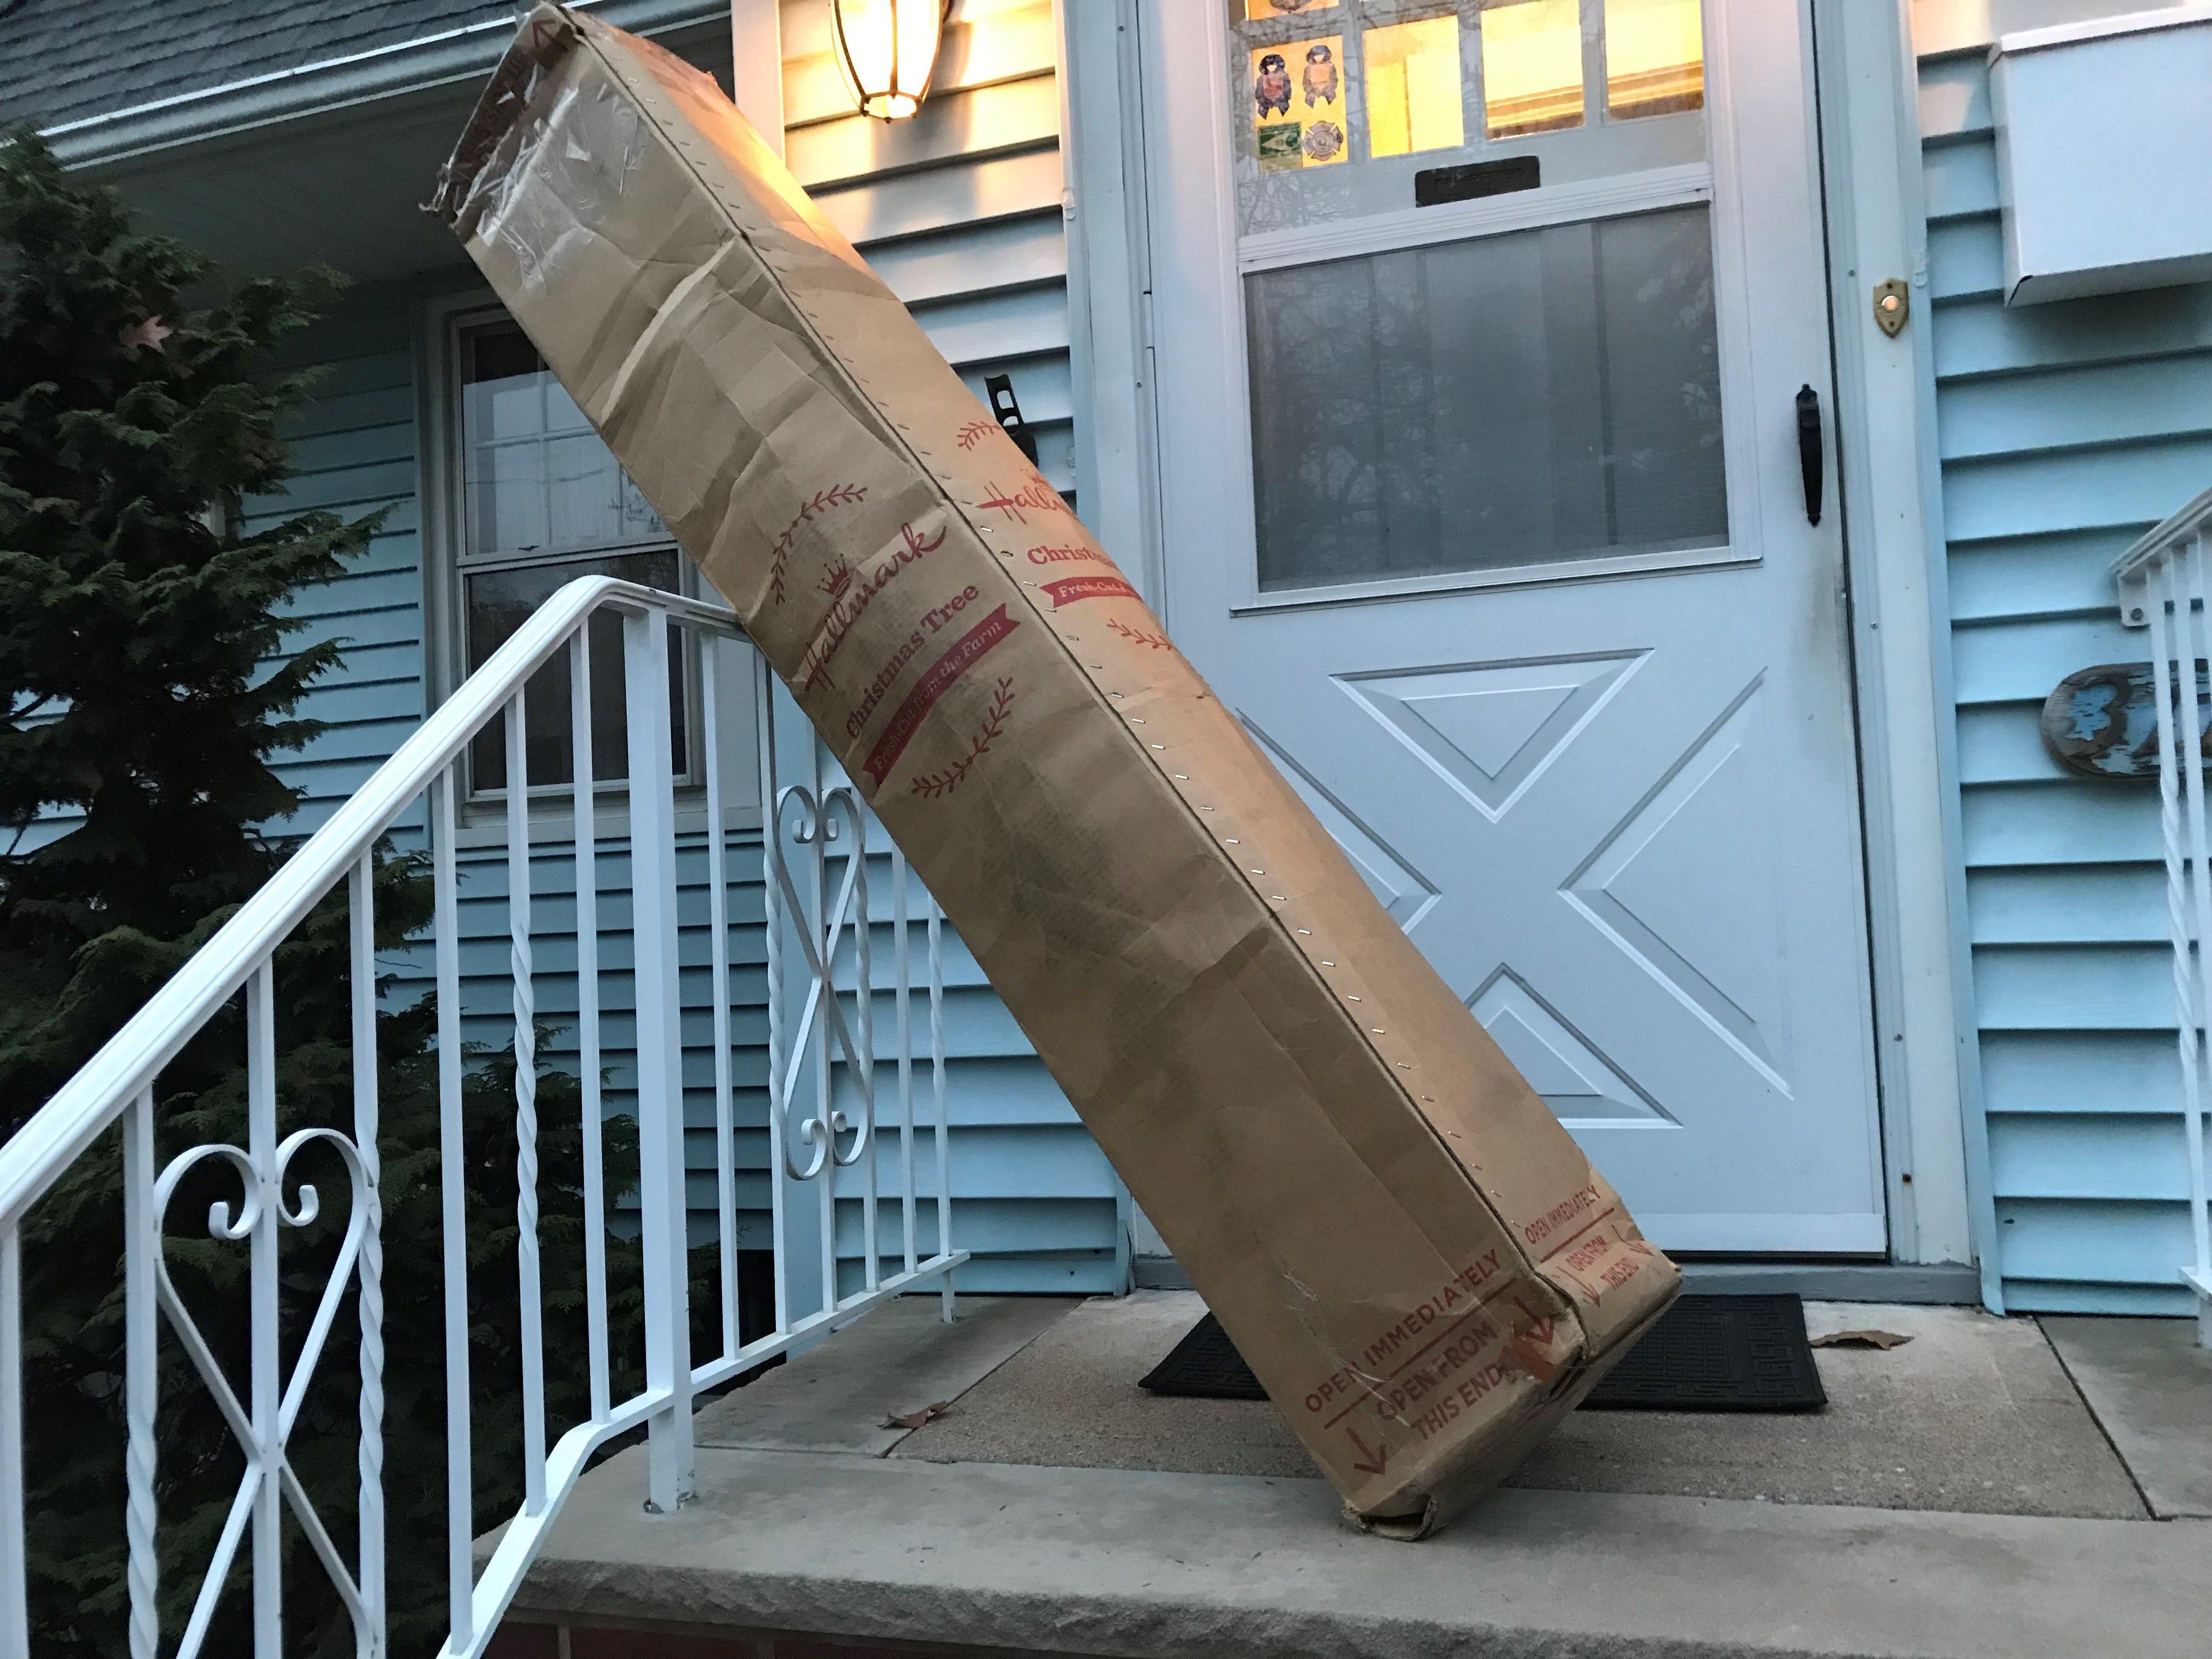 Amazon can deliver the tree, but not the holiday memories